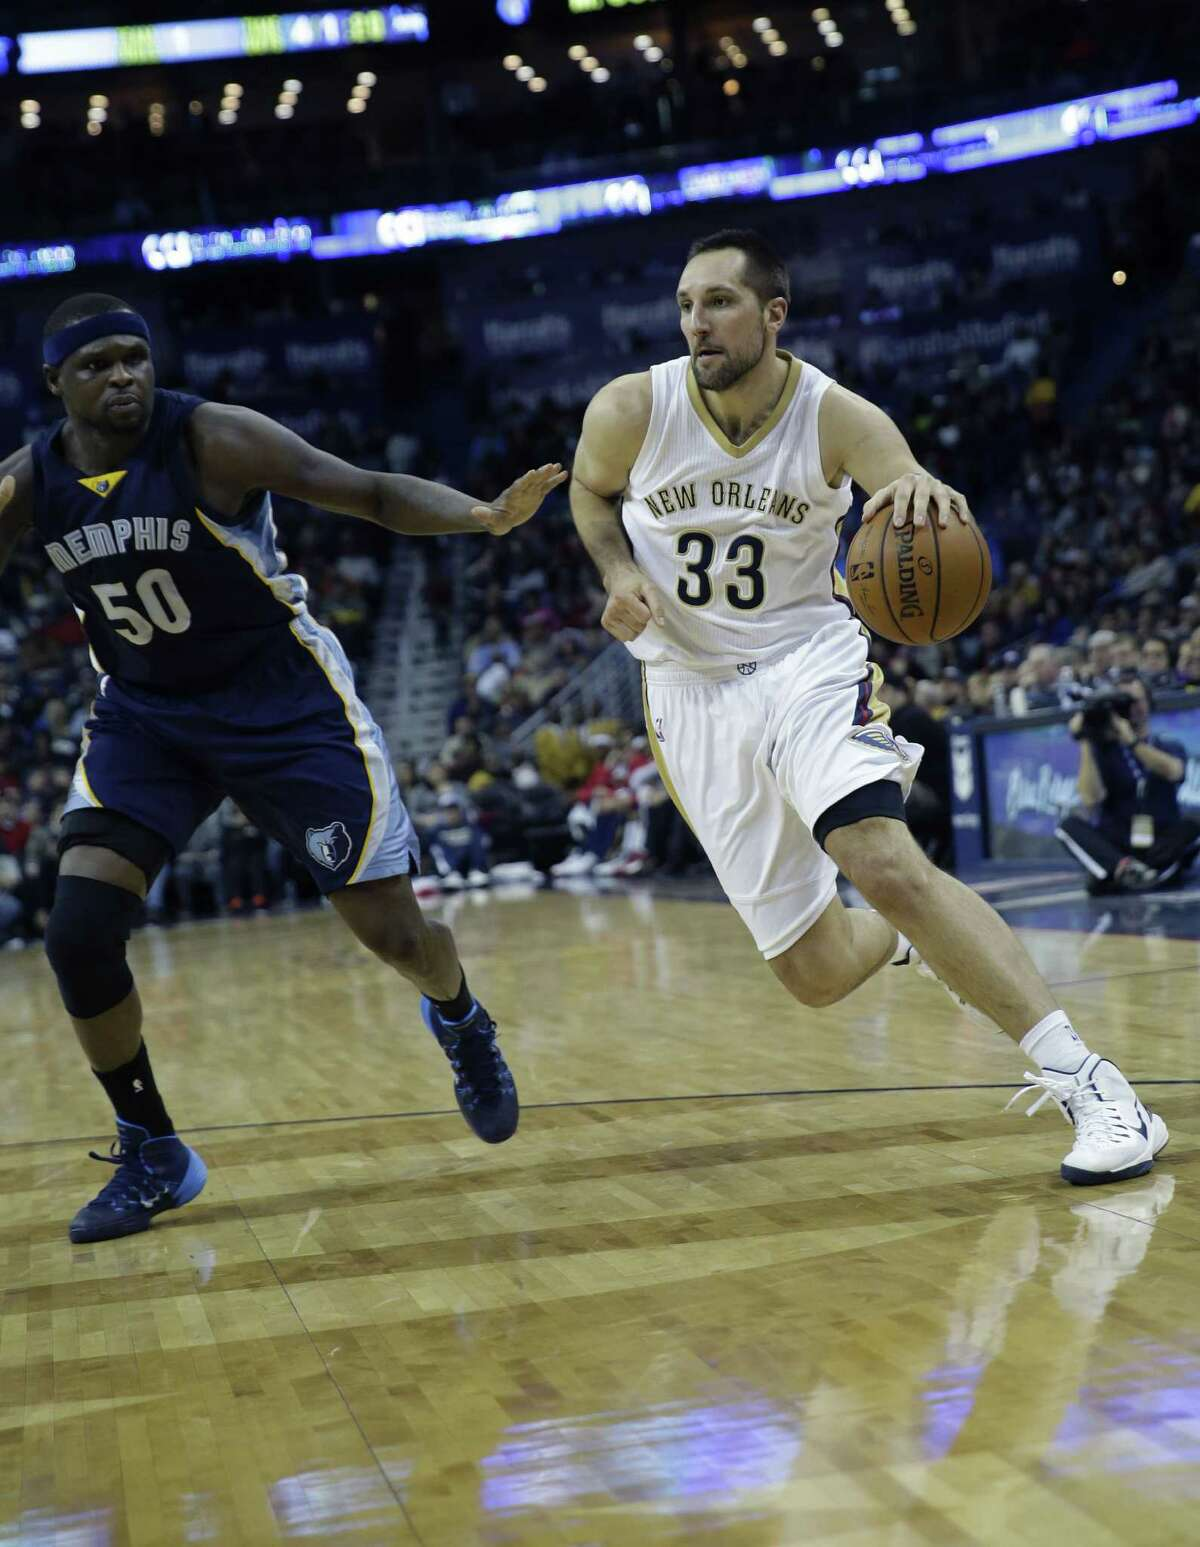 New Orleans Pelicans forward Ryan Anderson (33) drives to the basket against Memphis Grizzlies forward Zach Randolph (50) in the first half of an NBA basketball game in New Orleans, Friday, Jan. 9, 2015. (AP Photo/Gerald Herbert)